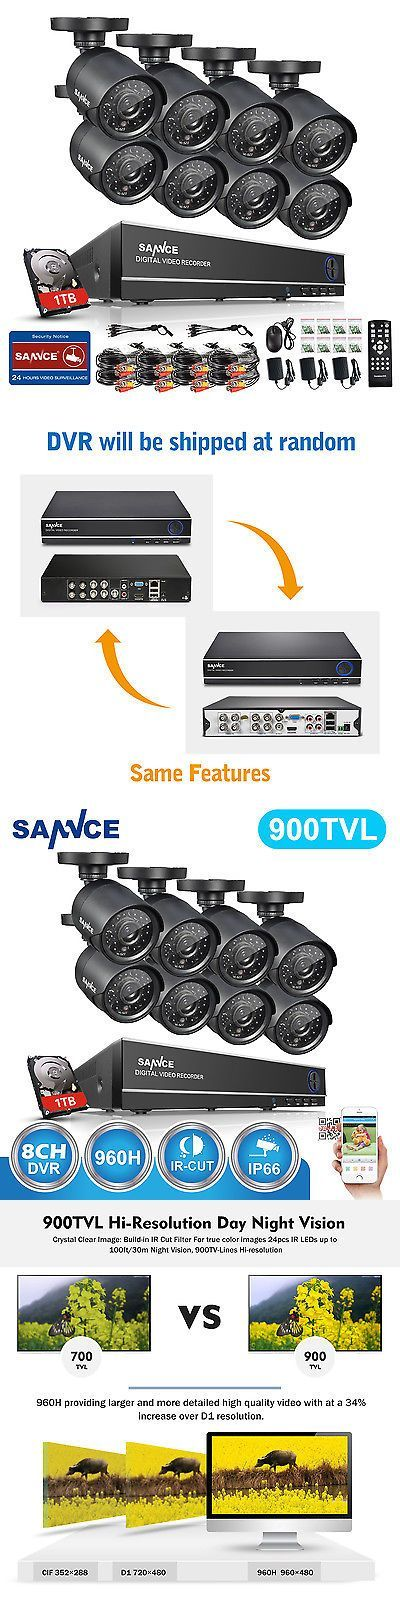 Security Cameras: Sannce 8Ch Hdmi Dvr 8 Cctv Ir Outdoor Home Security Camera System 1Tb Hard Drive BUY IT NOW ONLY: $209.99